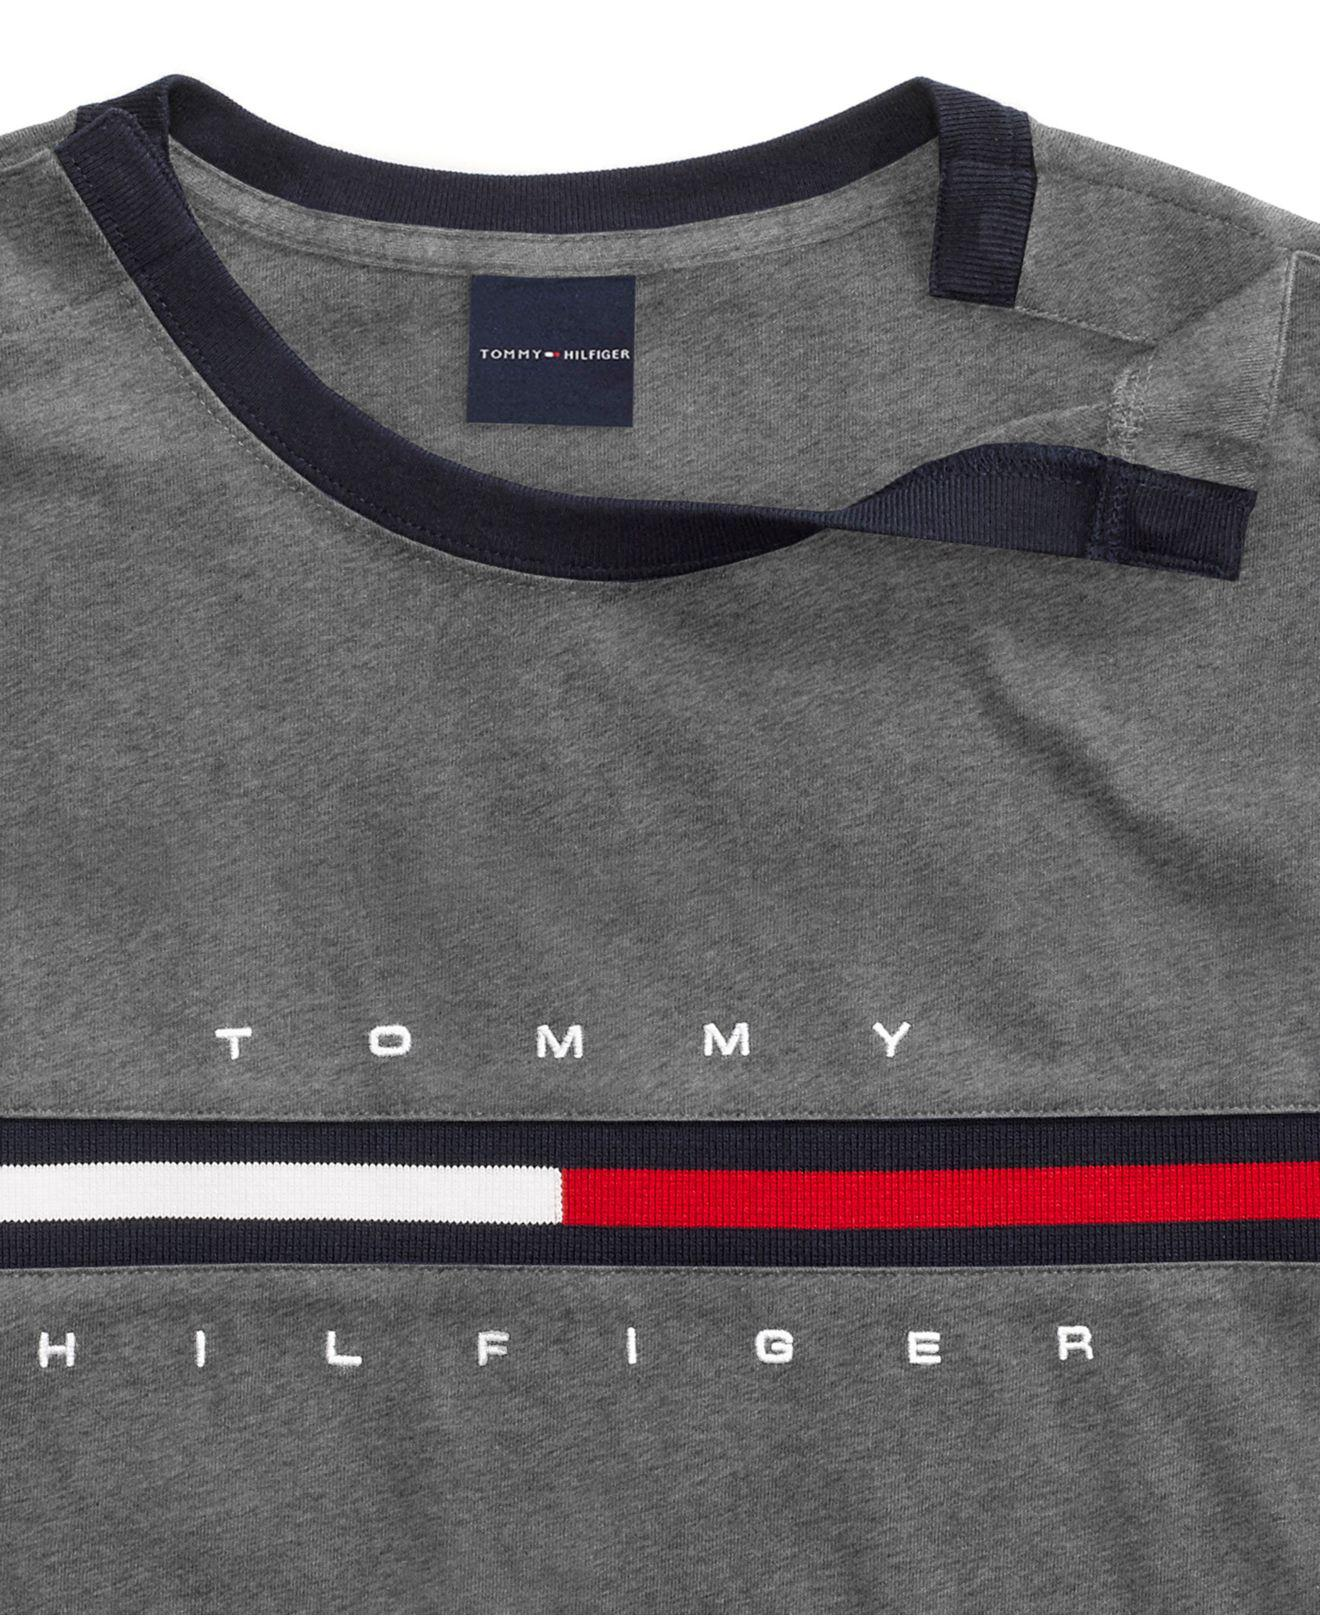 248469f9 Tommy Hilfiger - Gray Tino T-shirt With Magnetic Closure At Shoulders for  Men -. View fullscreen